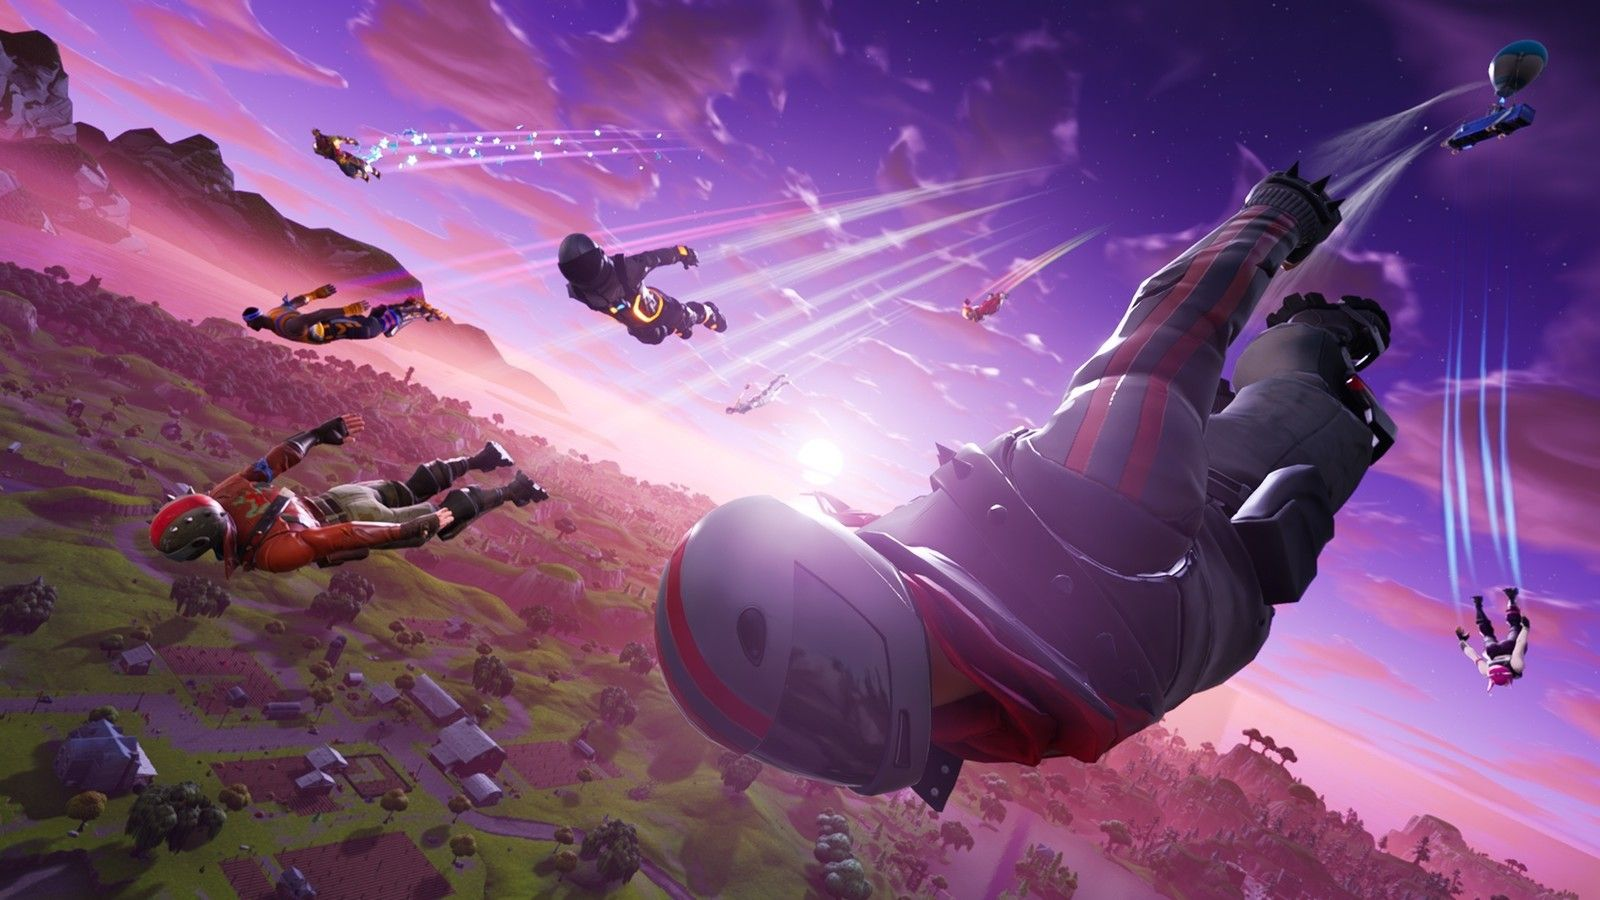 Fortnite 4k Dual Monitor Wallpapers Top Free Fortnite 4k